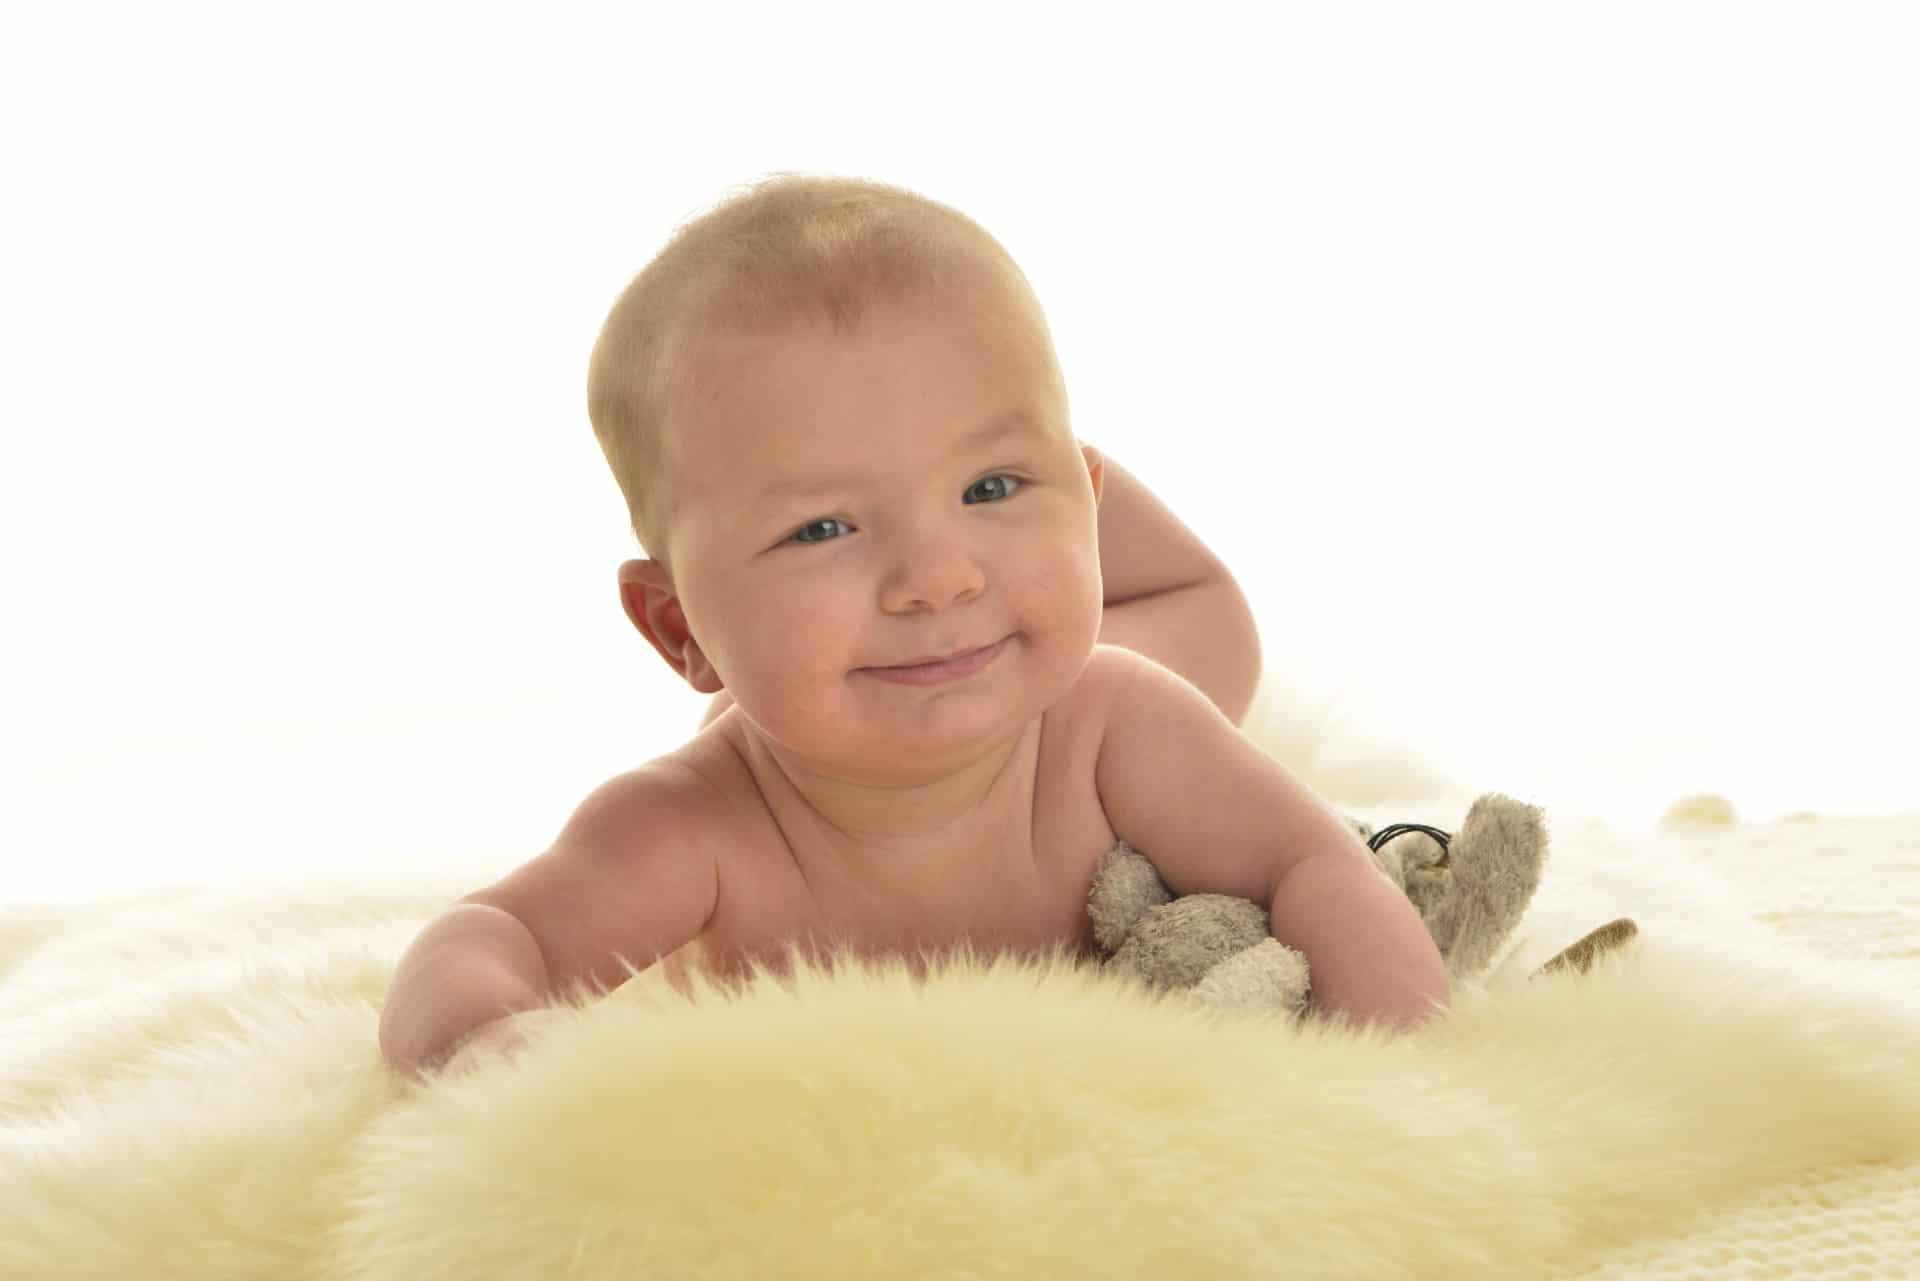 483-Schmitt-Photodesign-Babyfotos-A4sAcLQT